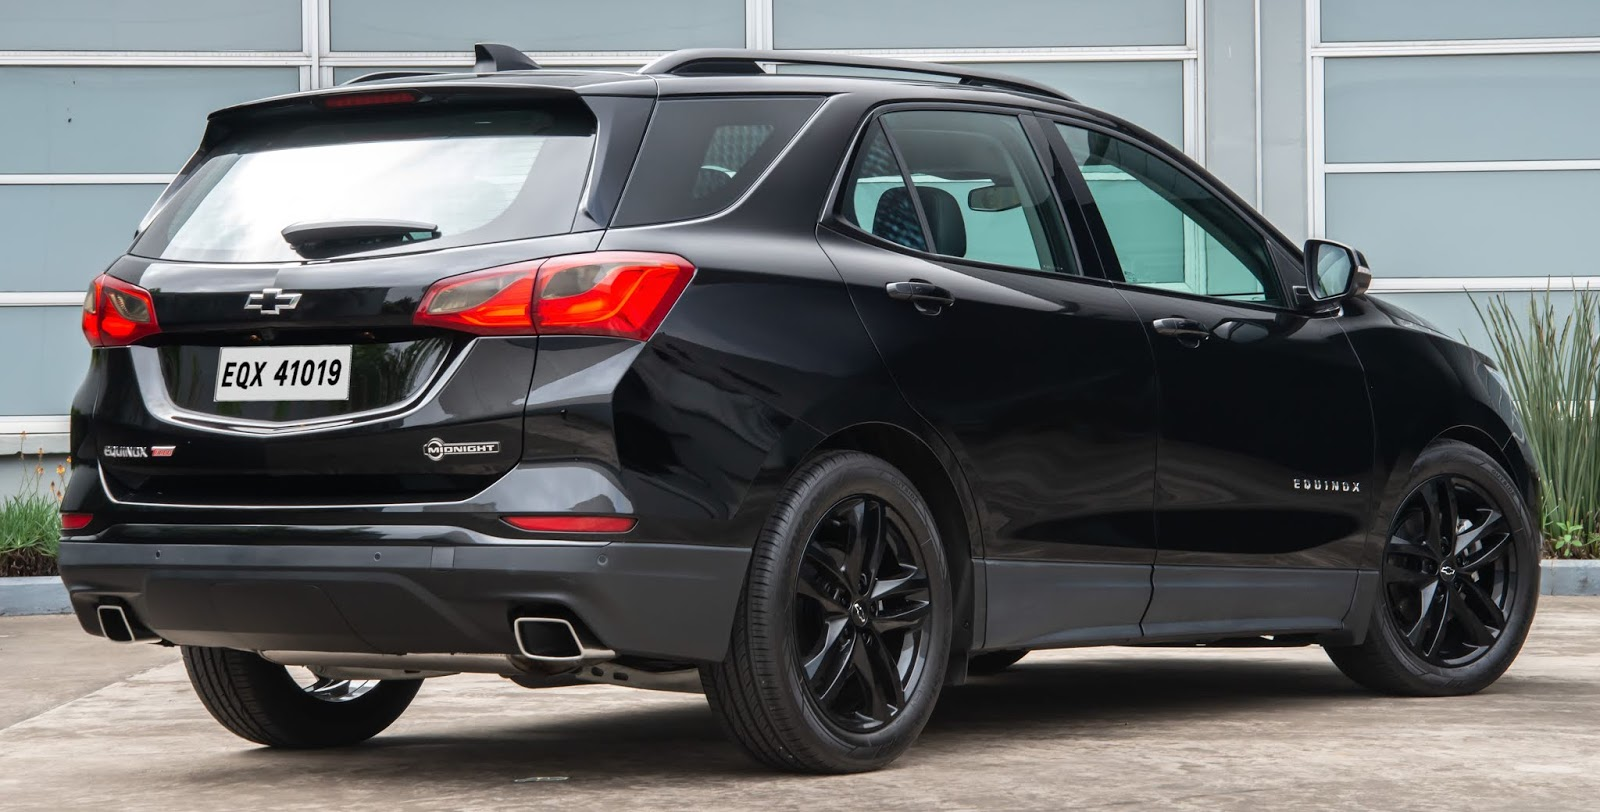 GM revela conceitos Cruze SS, Onix Sound, Trailblazer e Equinox Midnight